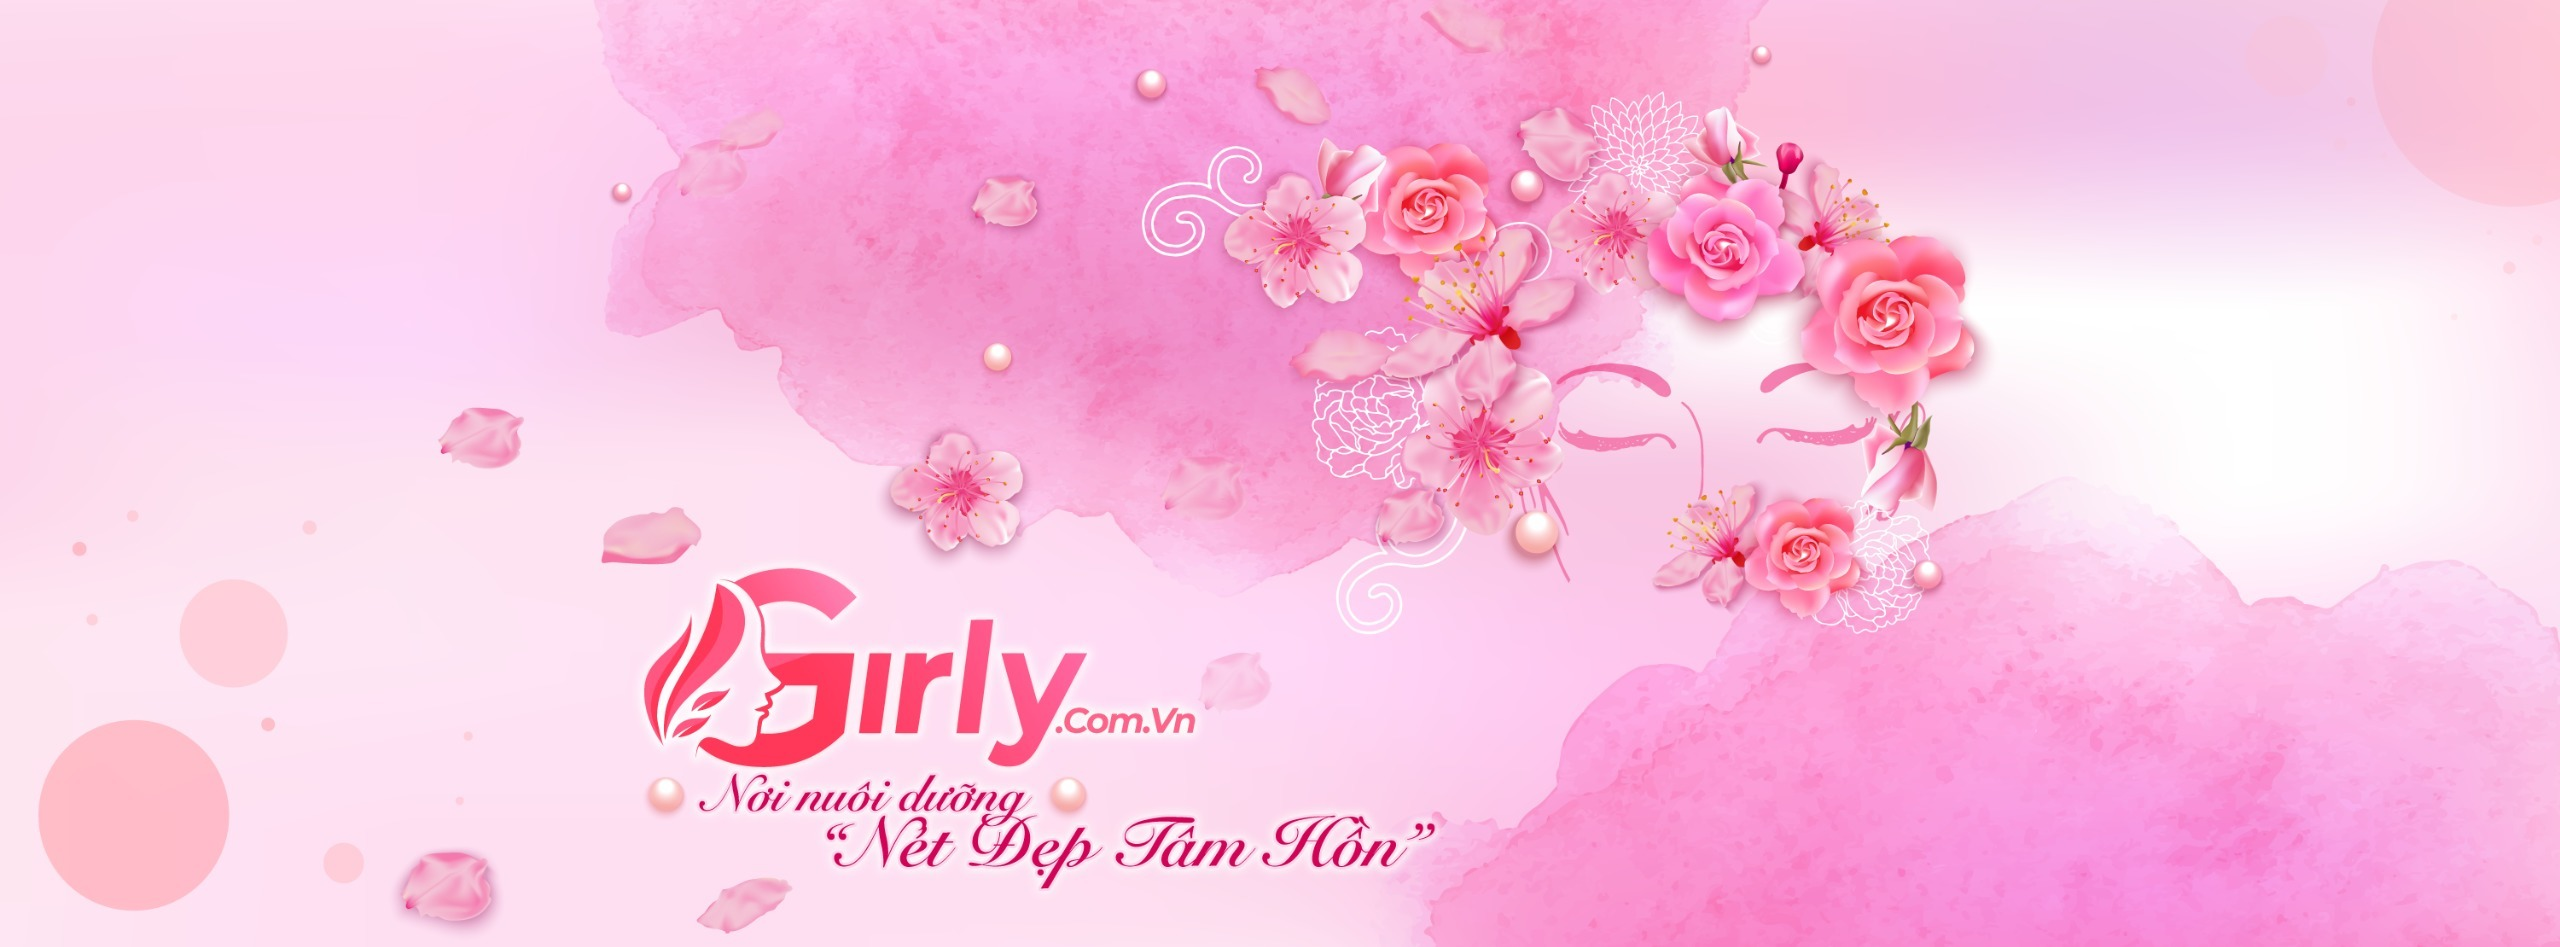 Girly (@girlycomvn) Cover Image